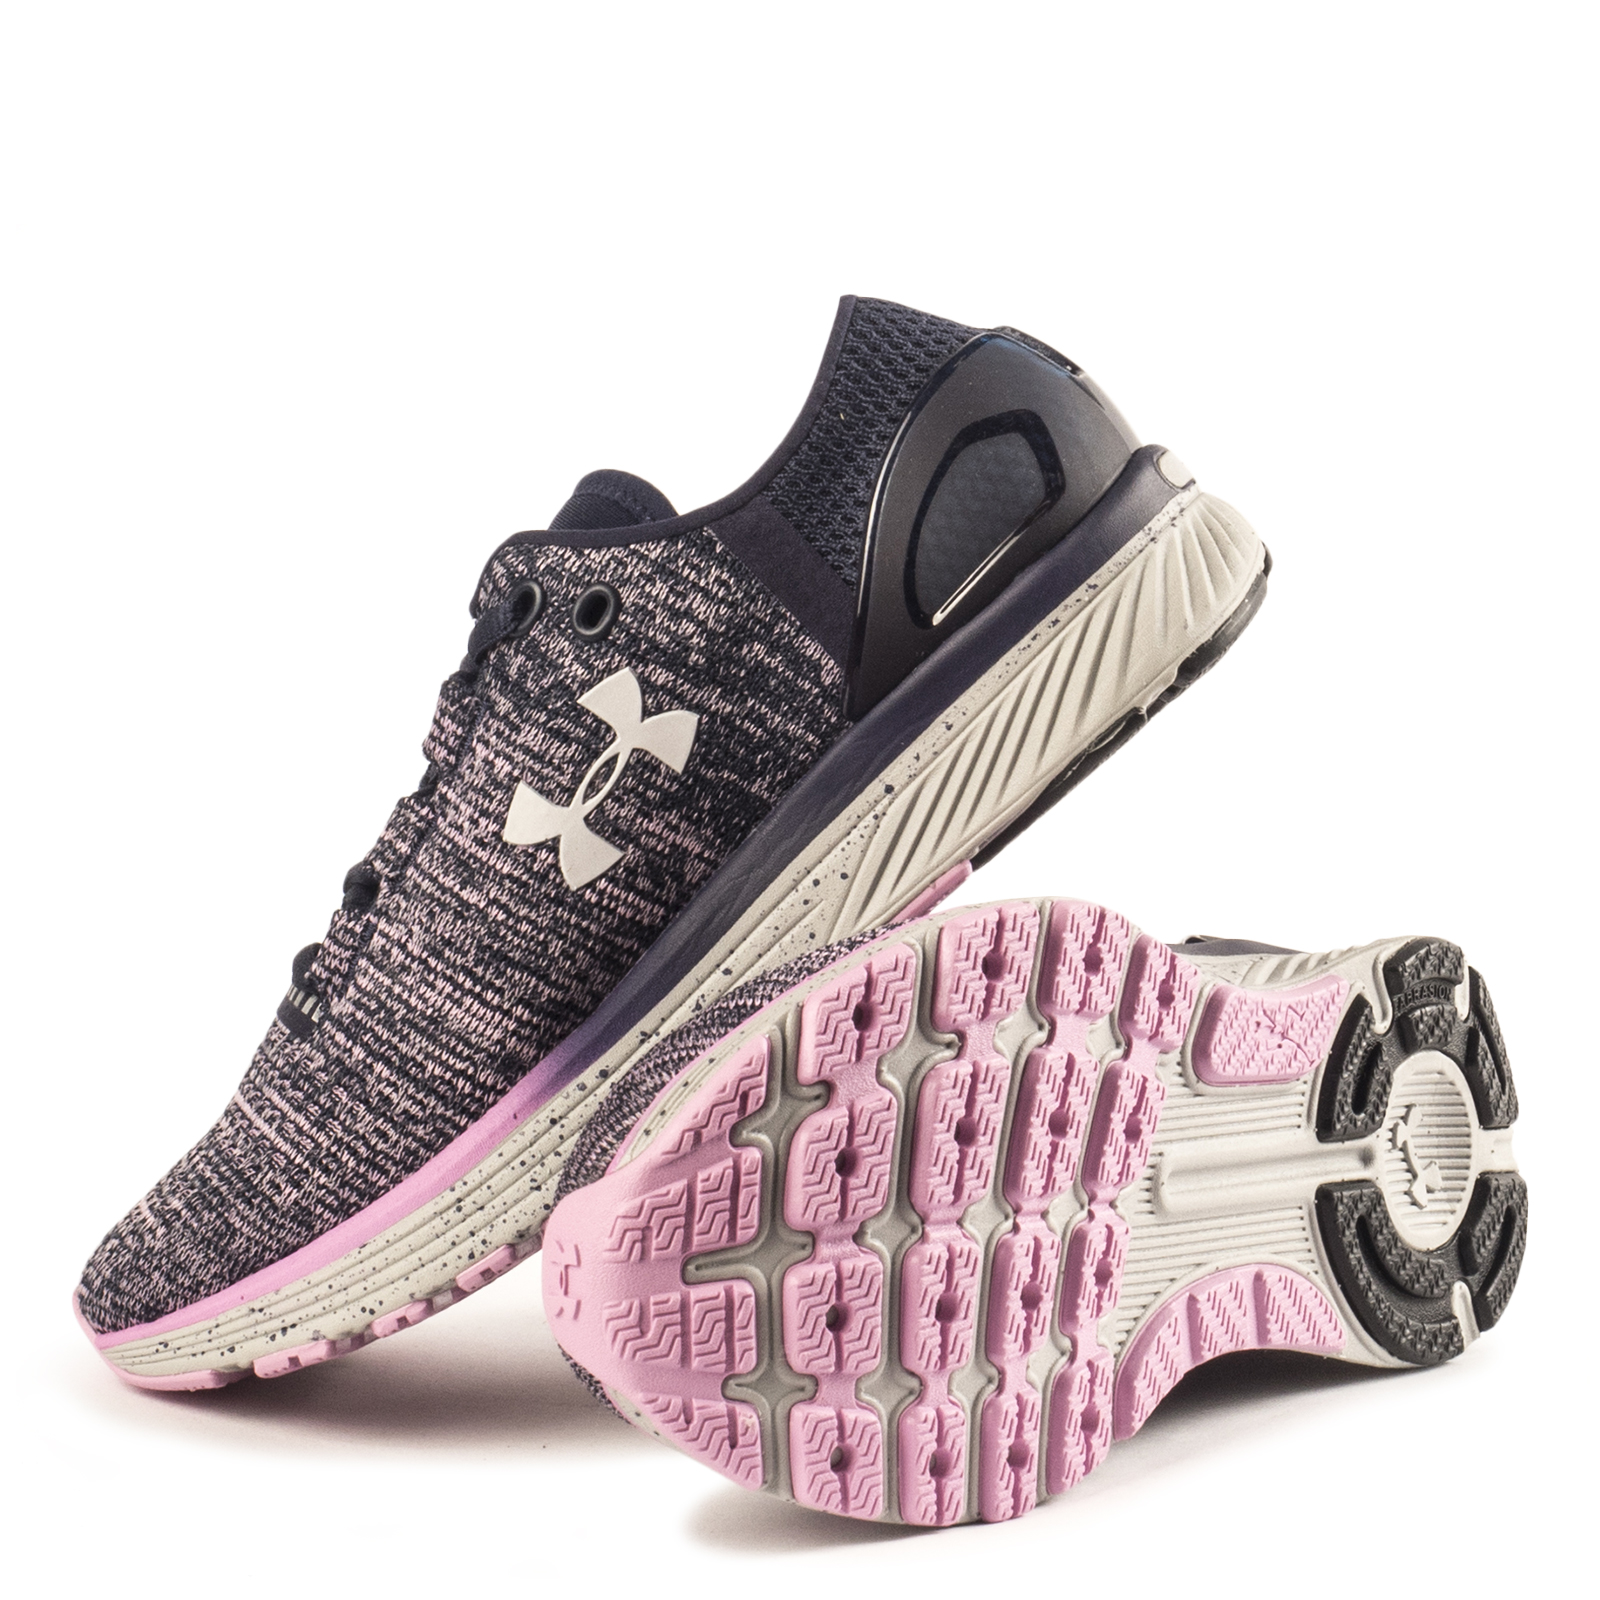 available from 10.11 Under Armour running shoes women 1298664-410 xiaomi smart shoes mijia running shoes